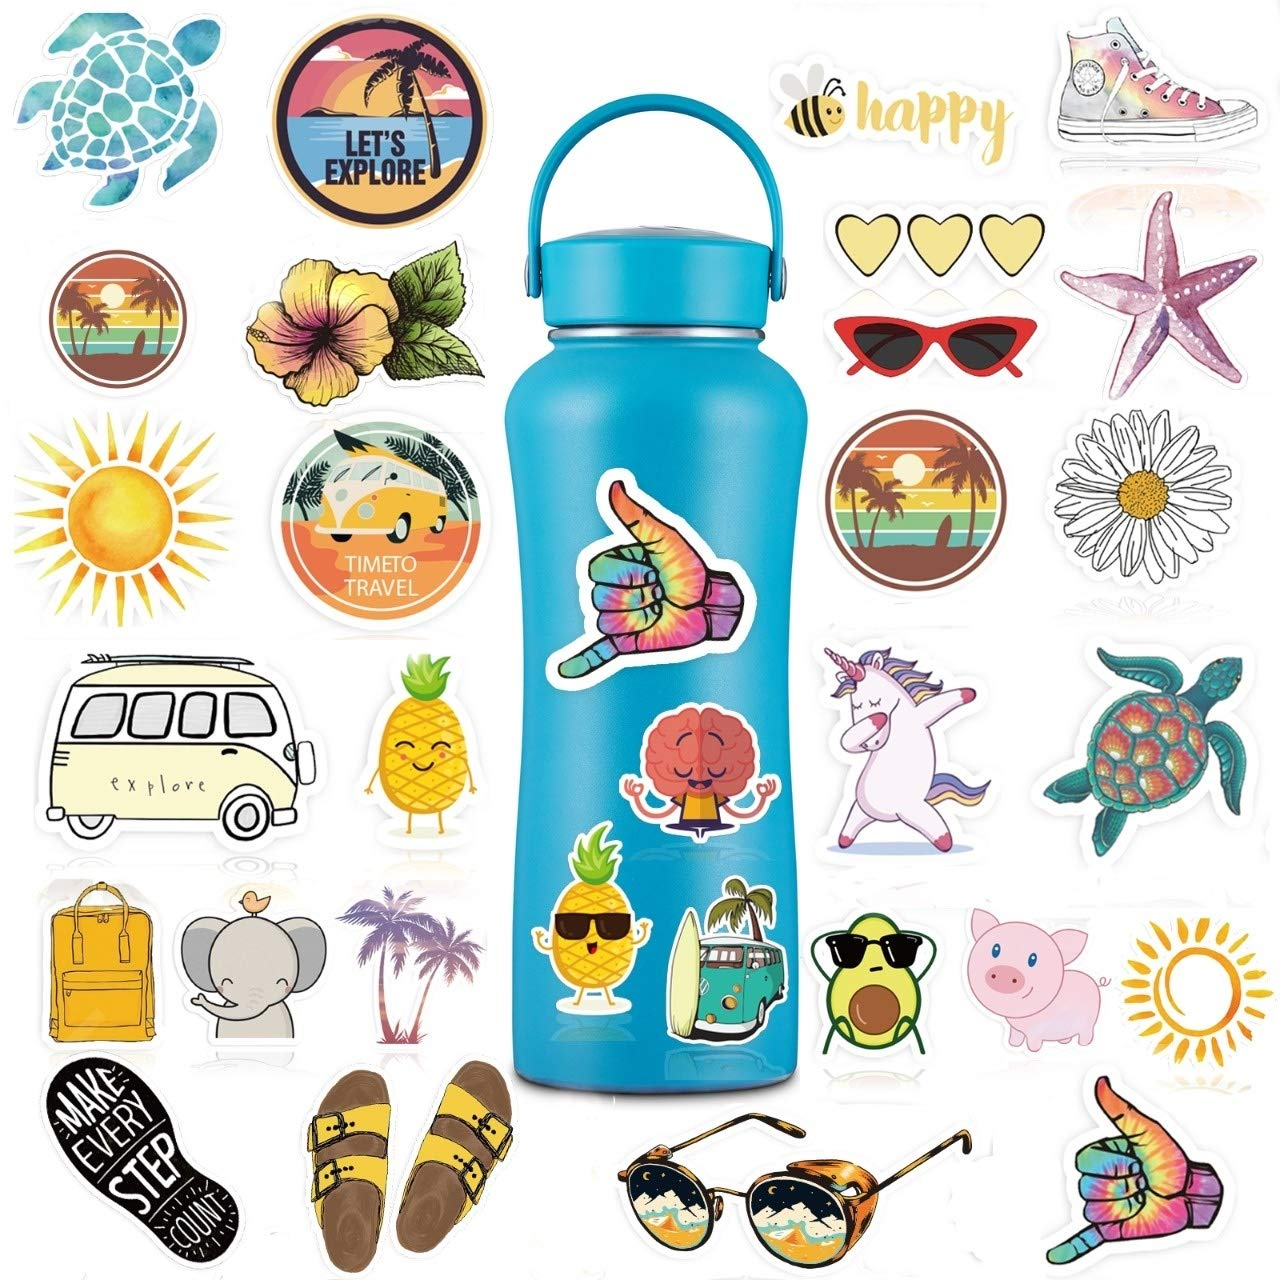 VSCO Water Bottle Stickers, 30 Pack Cute Waterproof Vinyl Stickers for Teens and Girls.Unique Cool Durable Decal Stickers, Aesthetic and Trendy Stickers for Water Bottles, Laptop, Phone.